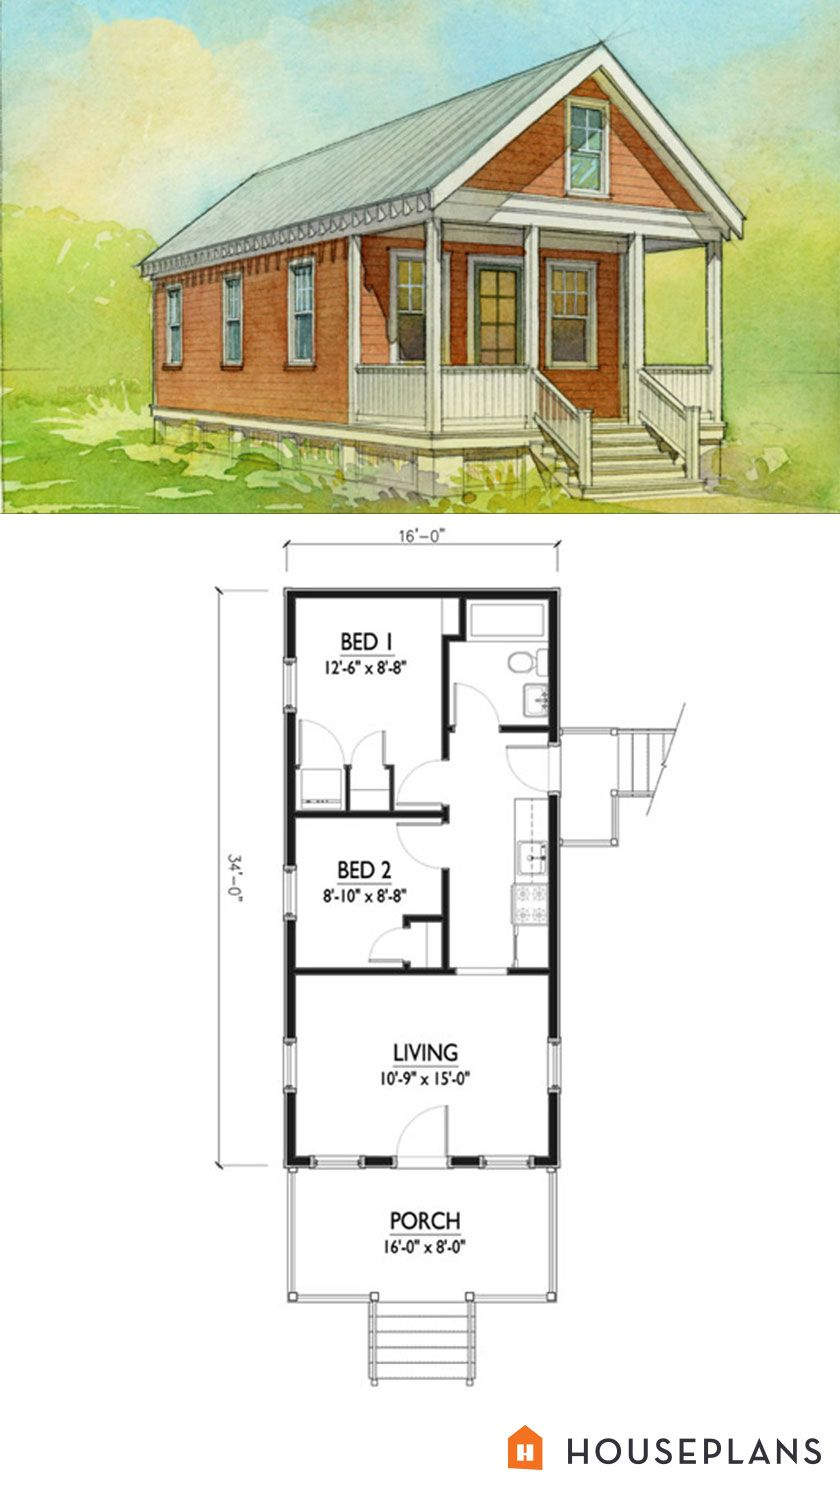 Small katrina cottage house plan 500sft 2br 1 bath by for Small bungalow house plans